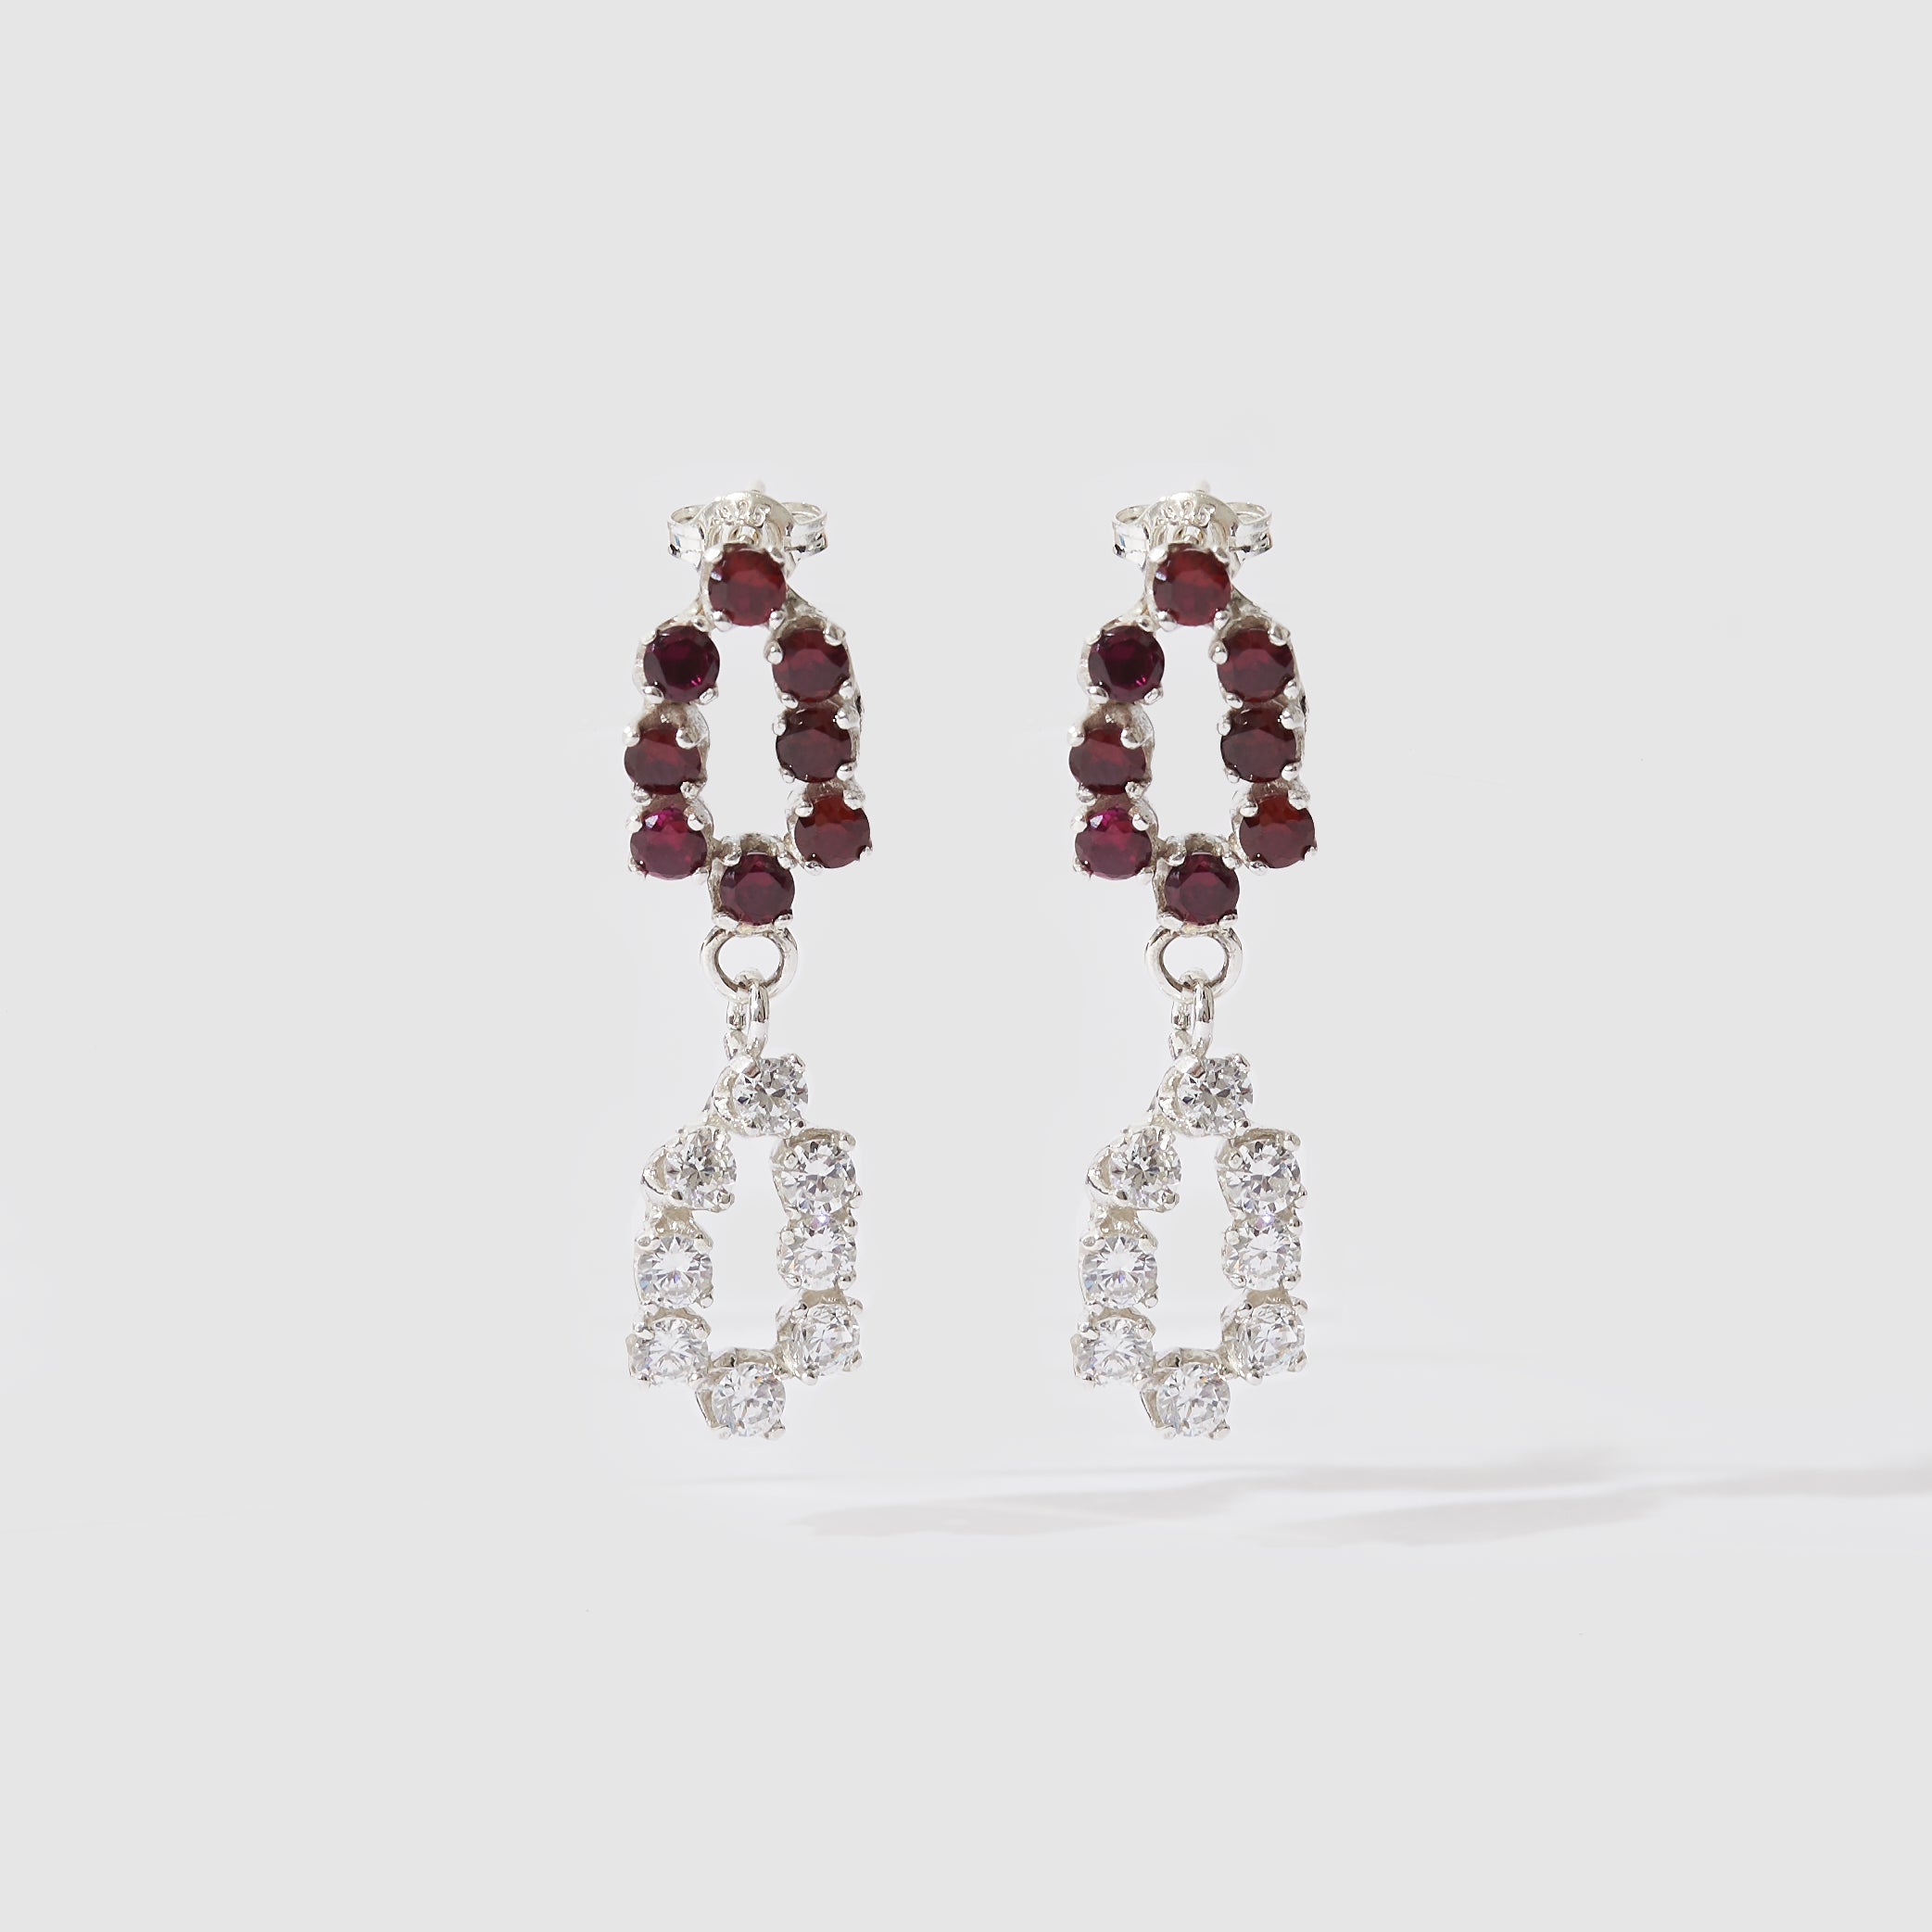 Double Evening Earrings - Red